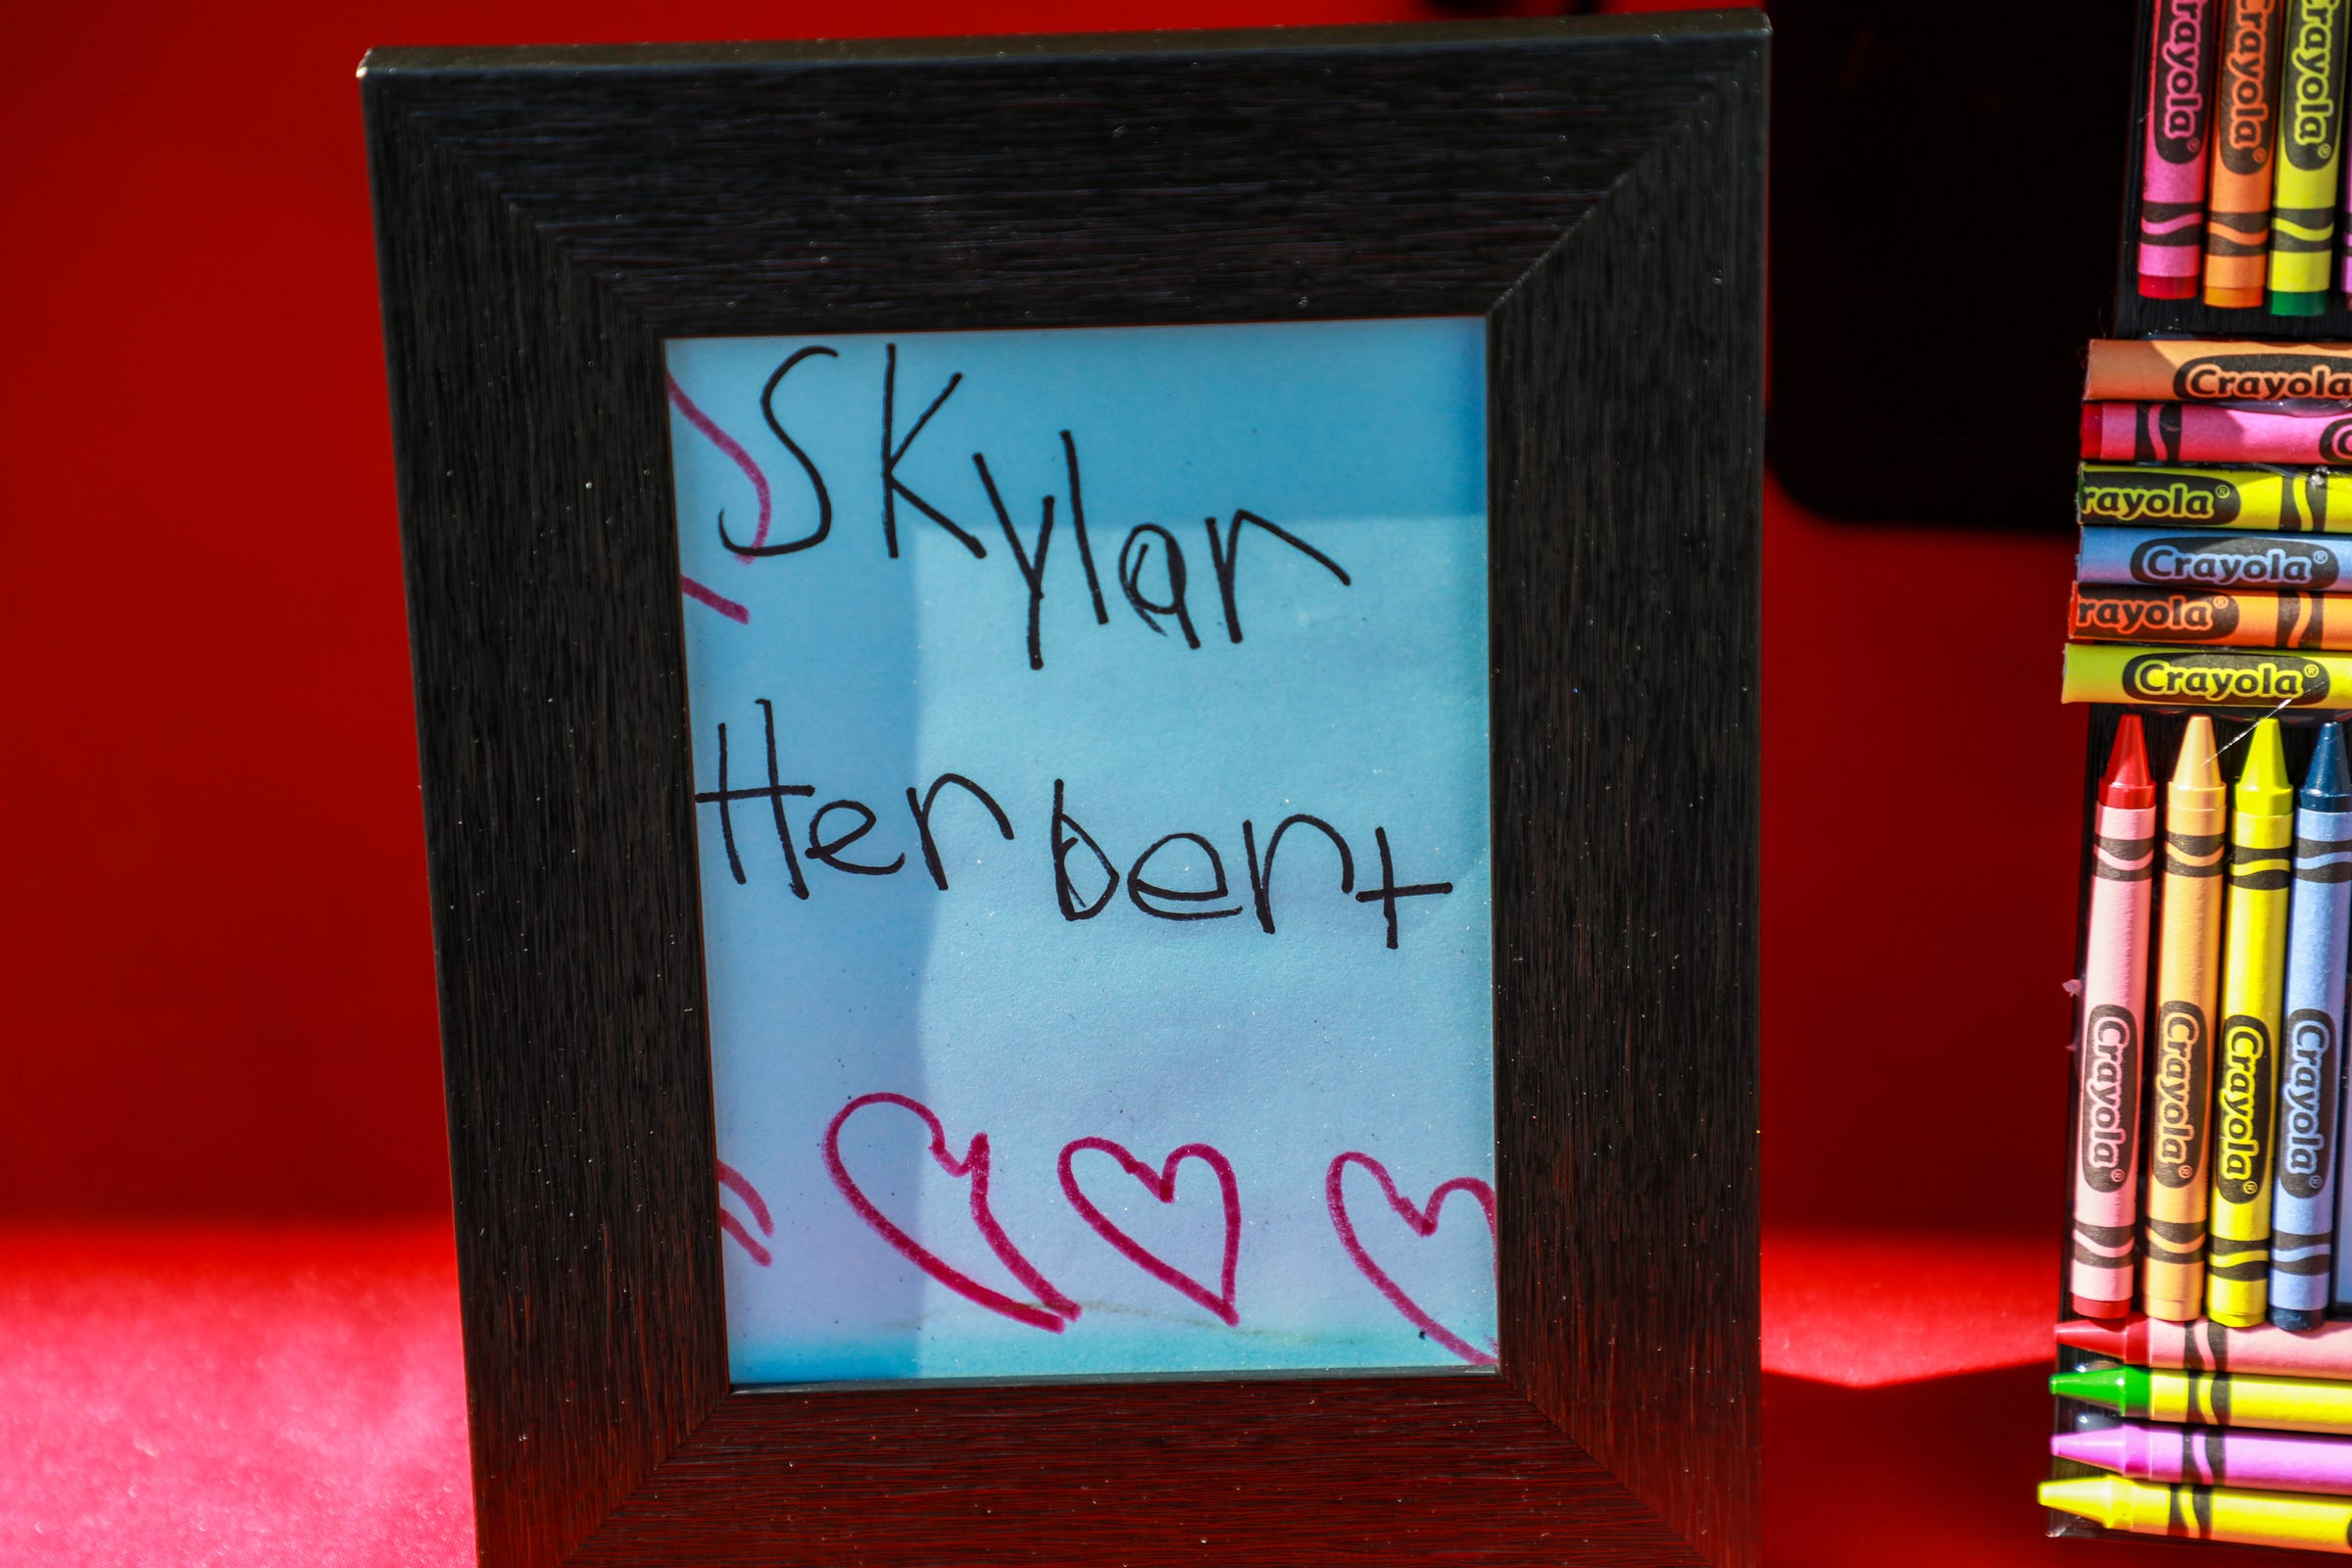 Skylar Herbert's, who was initially Michigan's youngest COVID-19 victim, elementary school, University Prep Academy - Mark Murray Campus plants a tree and some flowers in her memory on May 8, 2021. The school framed Skylar's artwork and gave it to her parents.